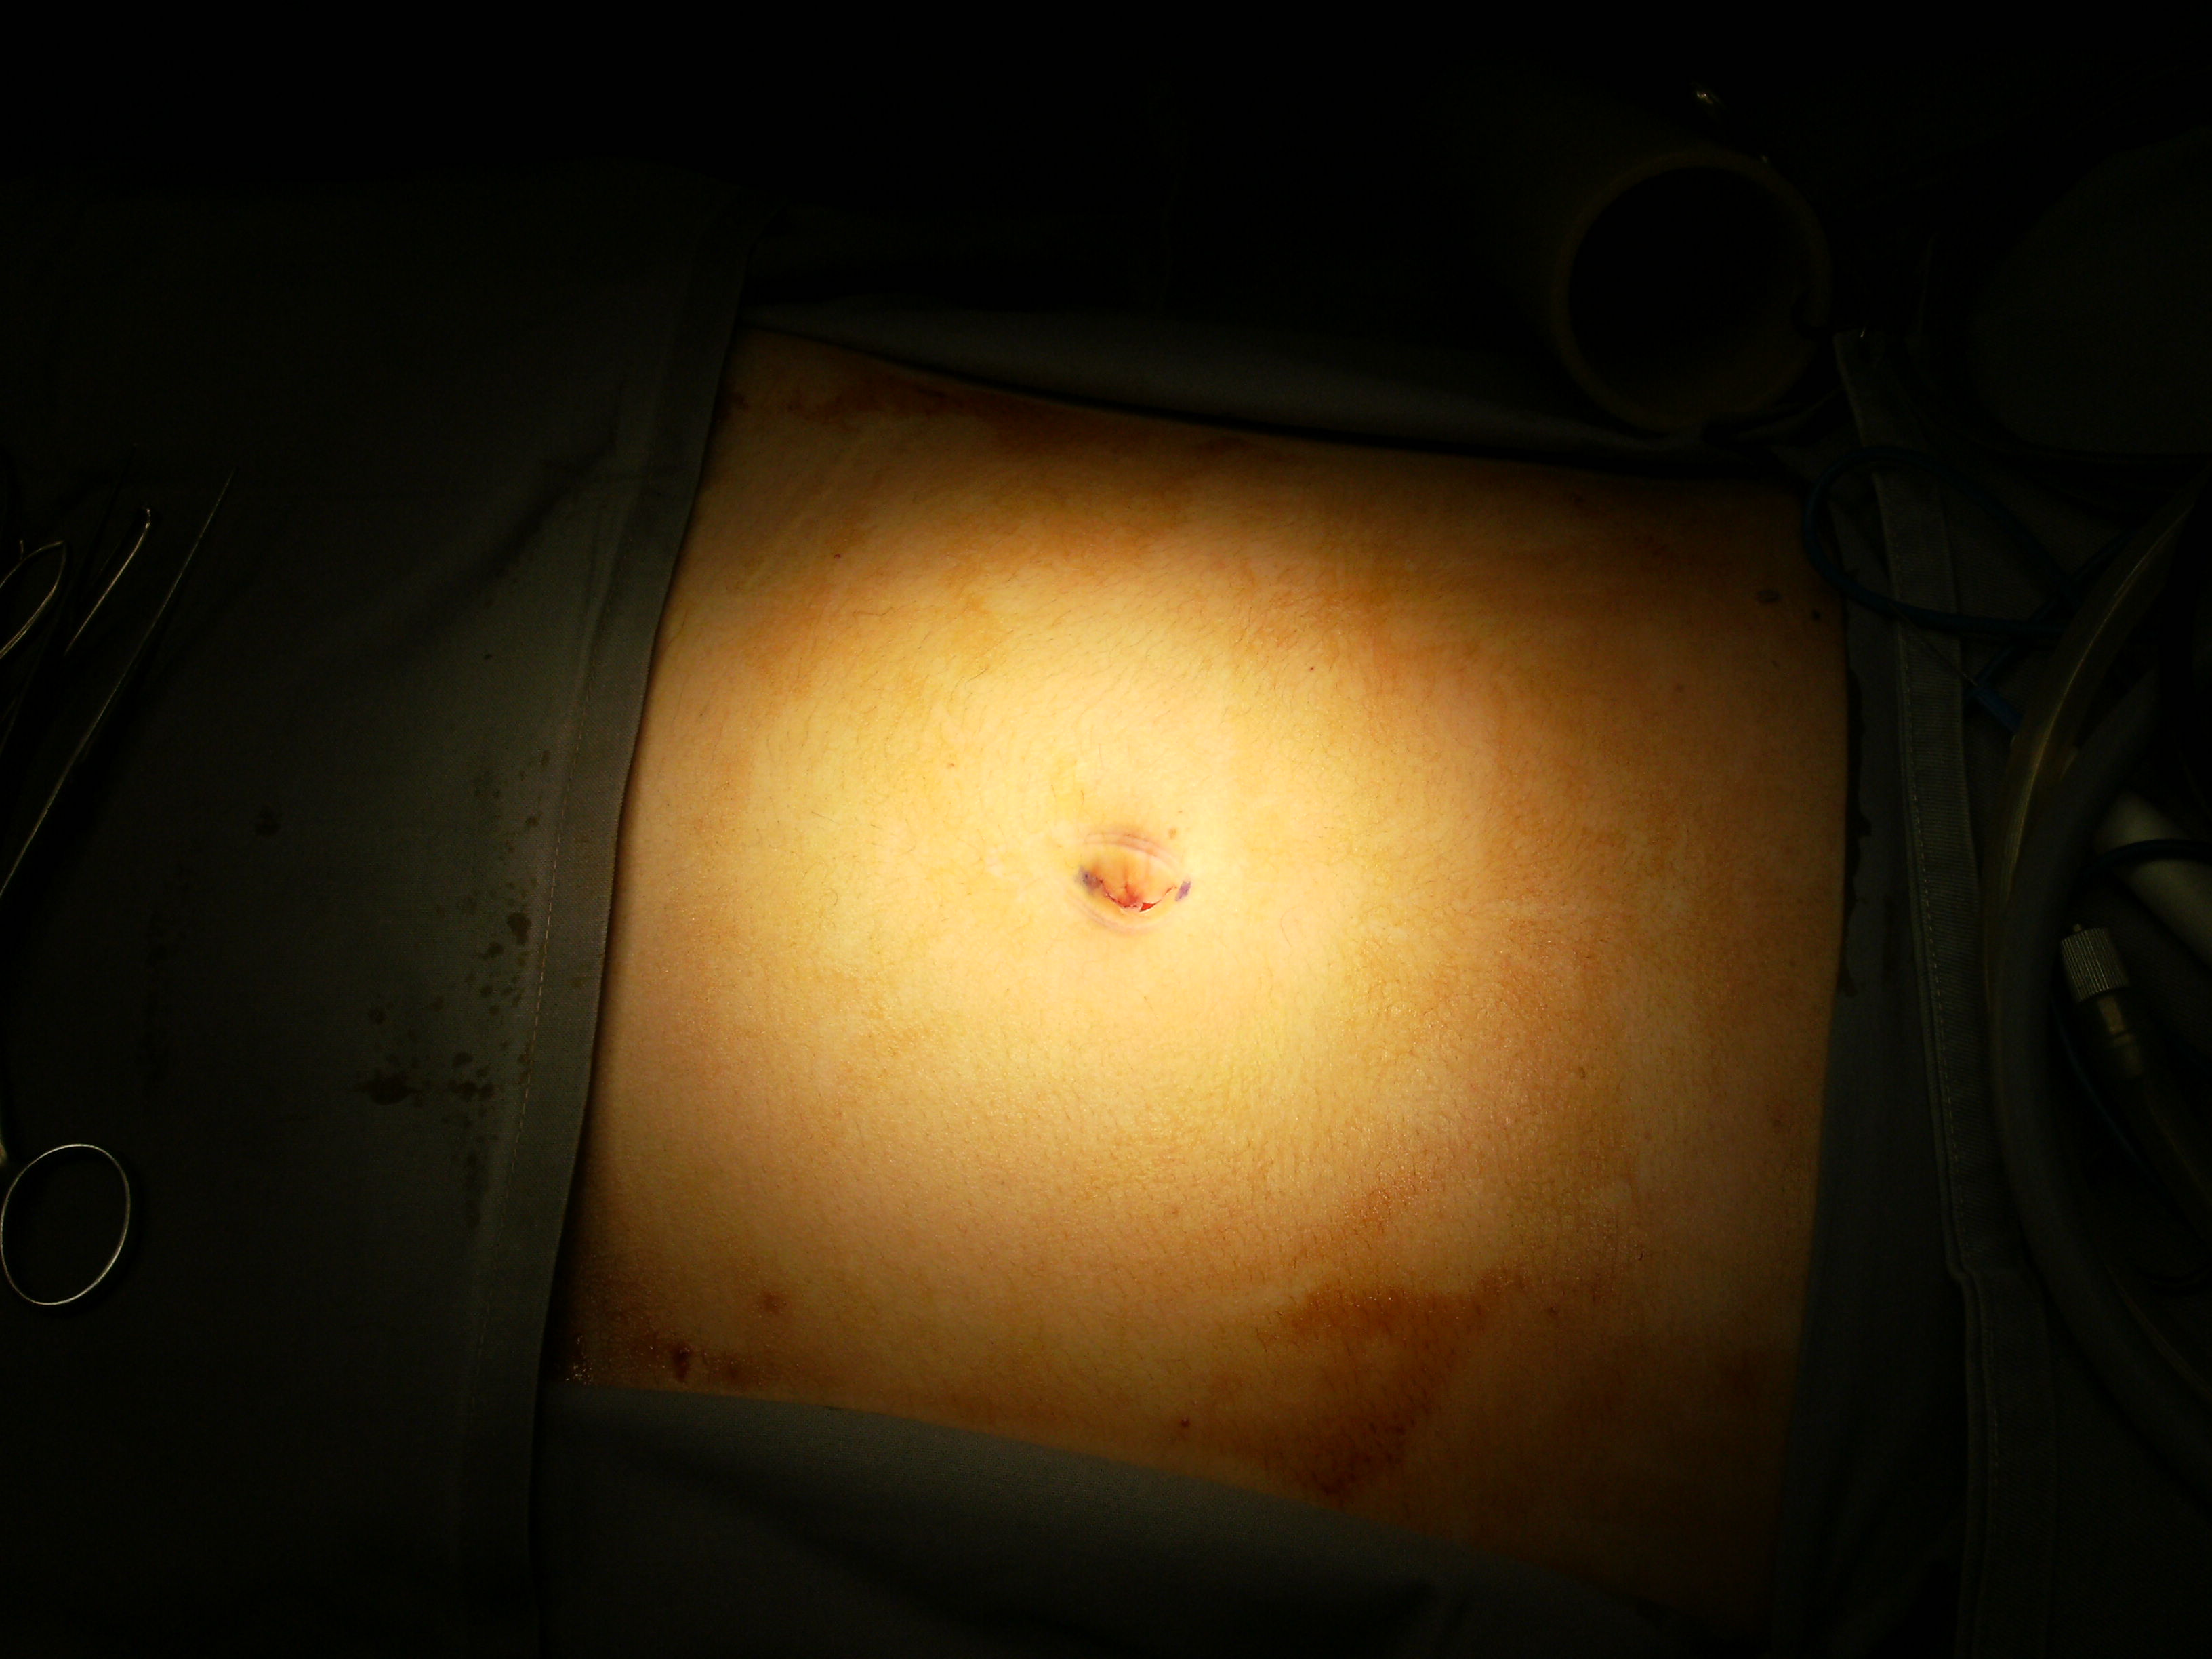 Incision marked within umbilicus